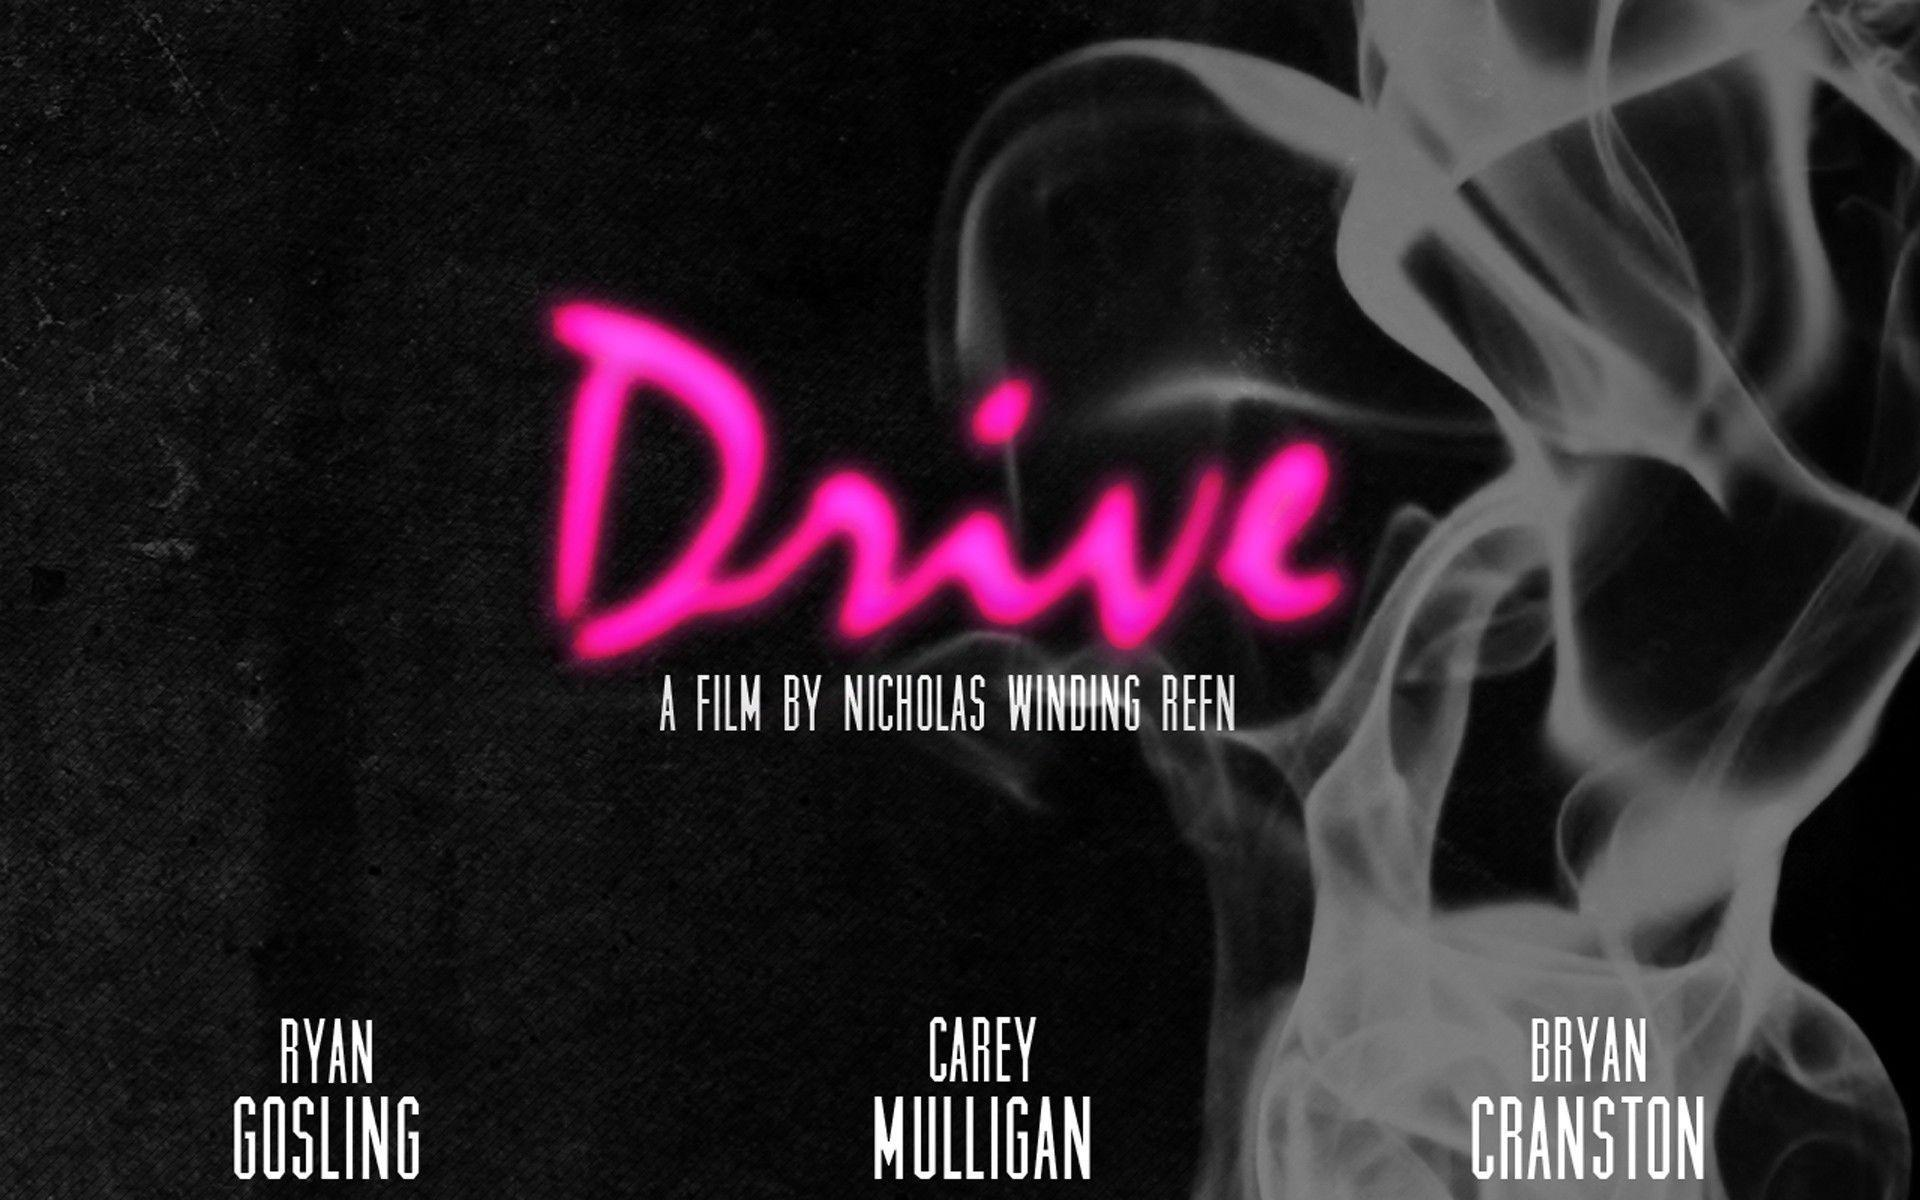 drive movie wallpaper images - photo #14